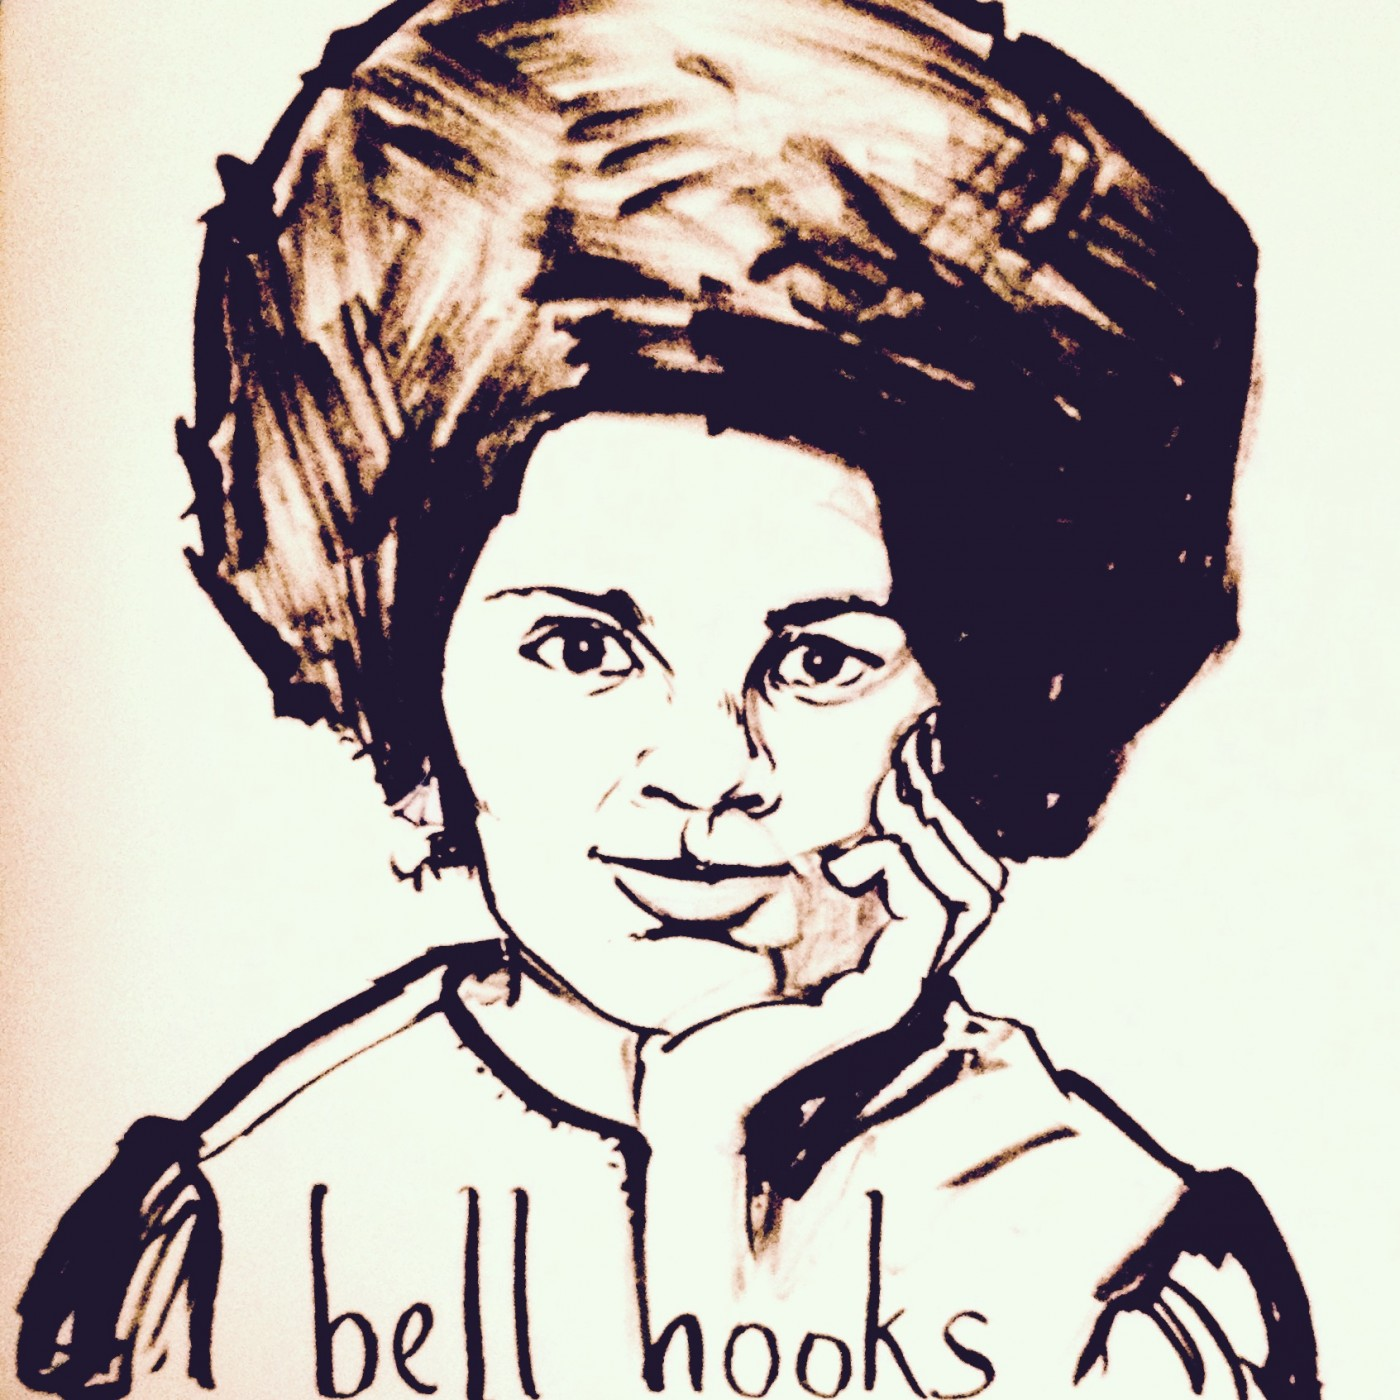 001 Bell Hooks Essays Essay Example Best Patriarchy Feminism 1400